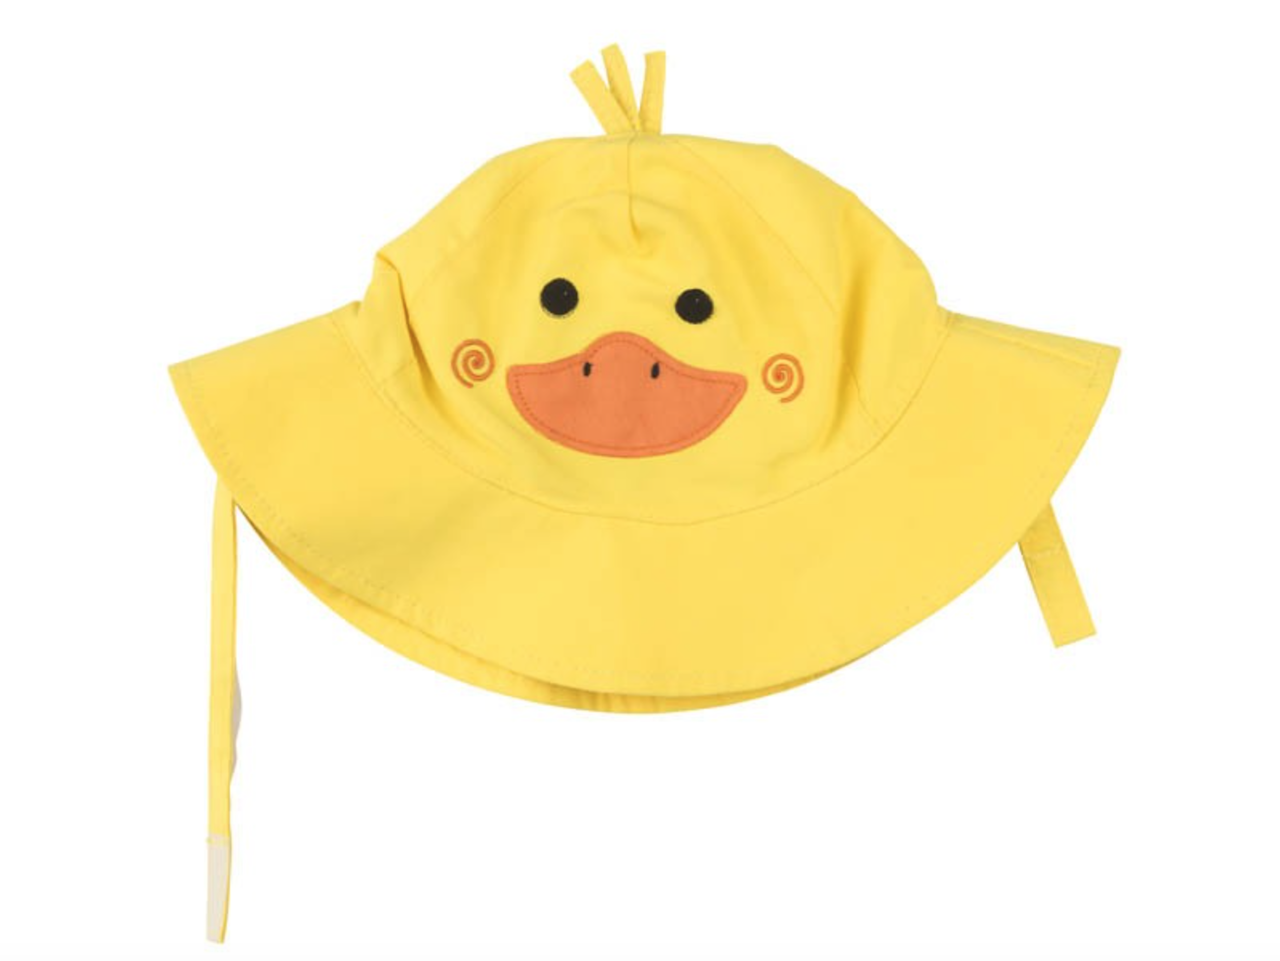 Girls Bucket Hat Wide Brim Terry Towelling Sun Protection Size 2,3,4,5,6,7 Yello